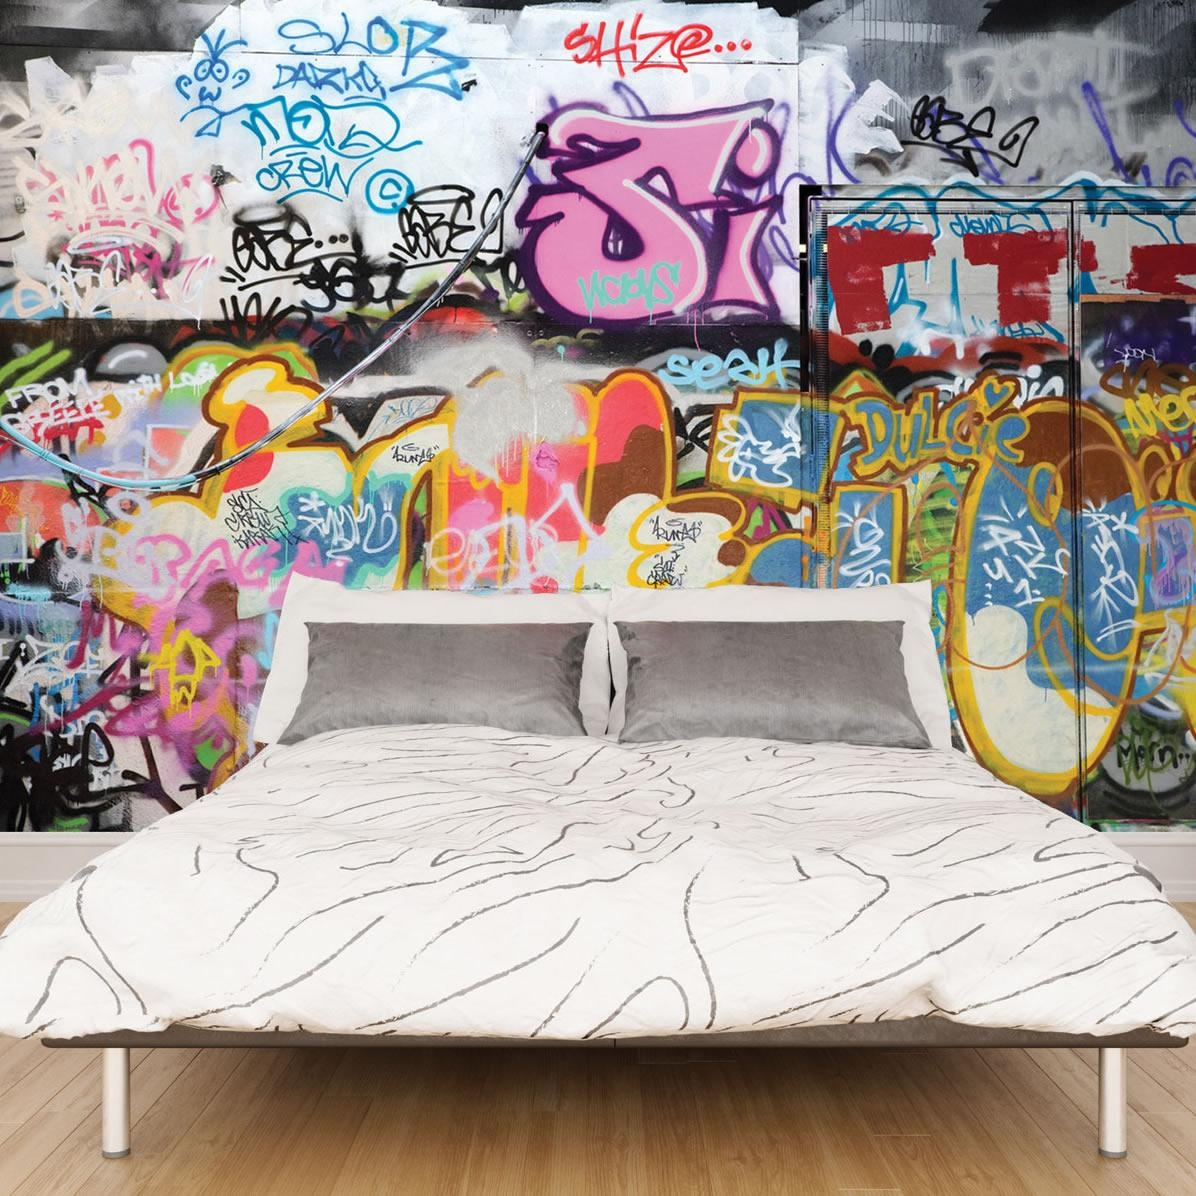 Pop Art & Graffiti | Plasticbanners Throughout Pop Art Wallpaper For Walls (Image 8 of 20)